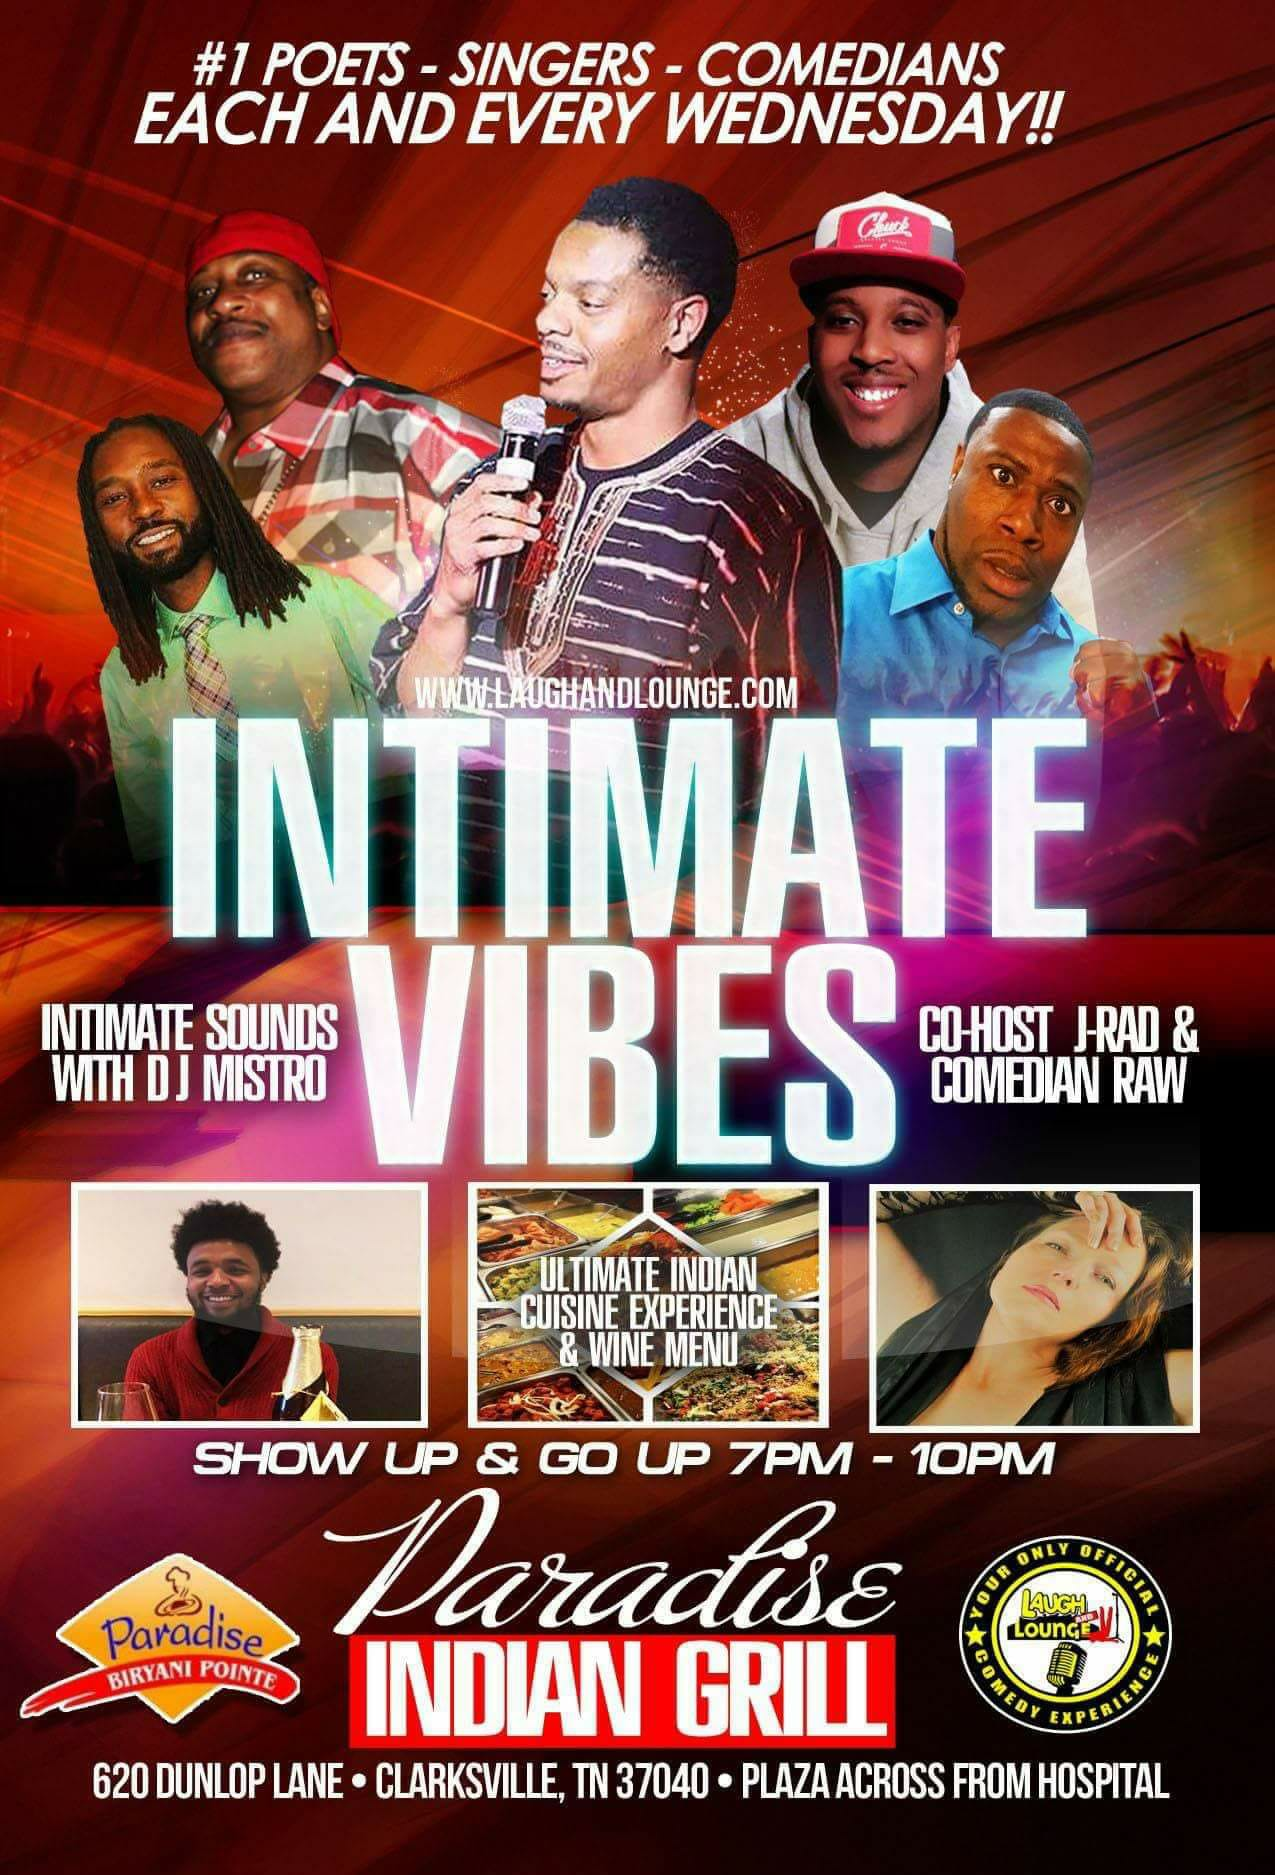 LAUGH AND LOUNGE INTIMATE VIBES